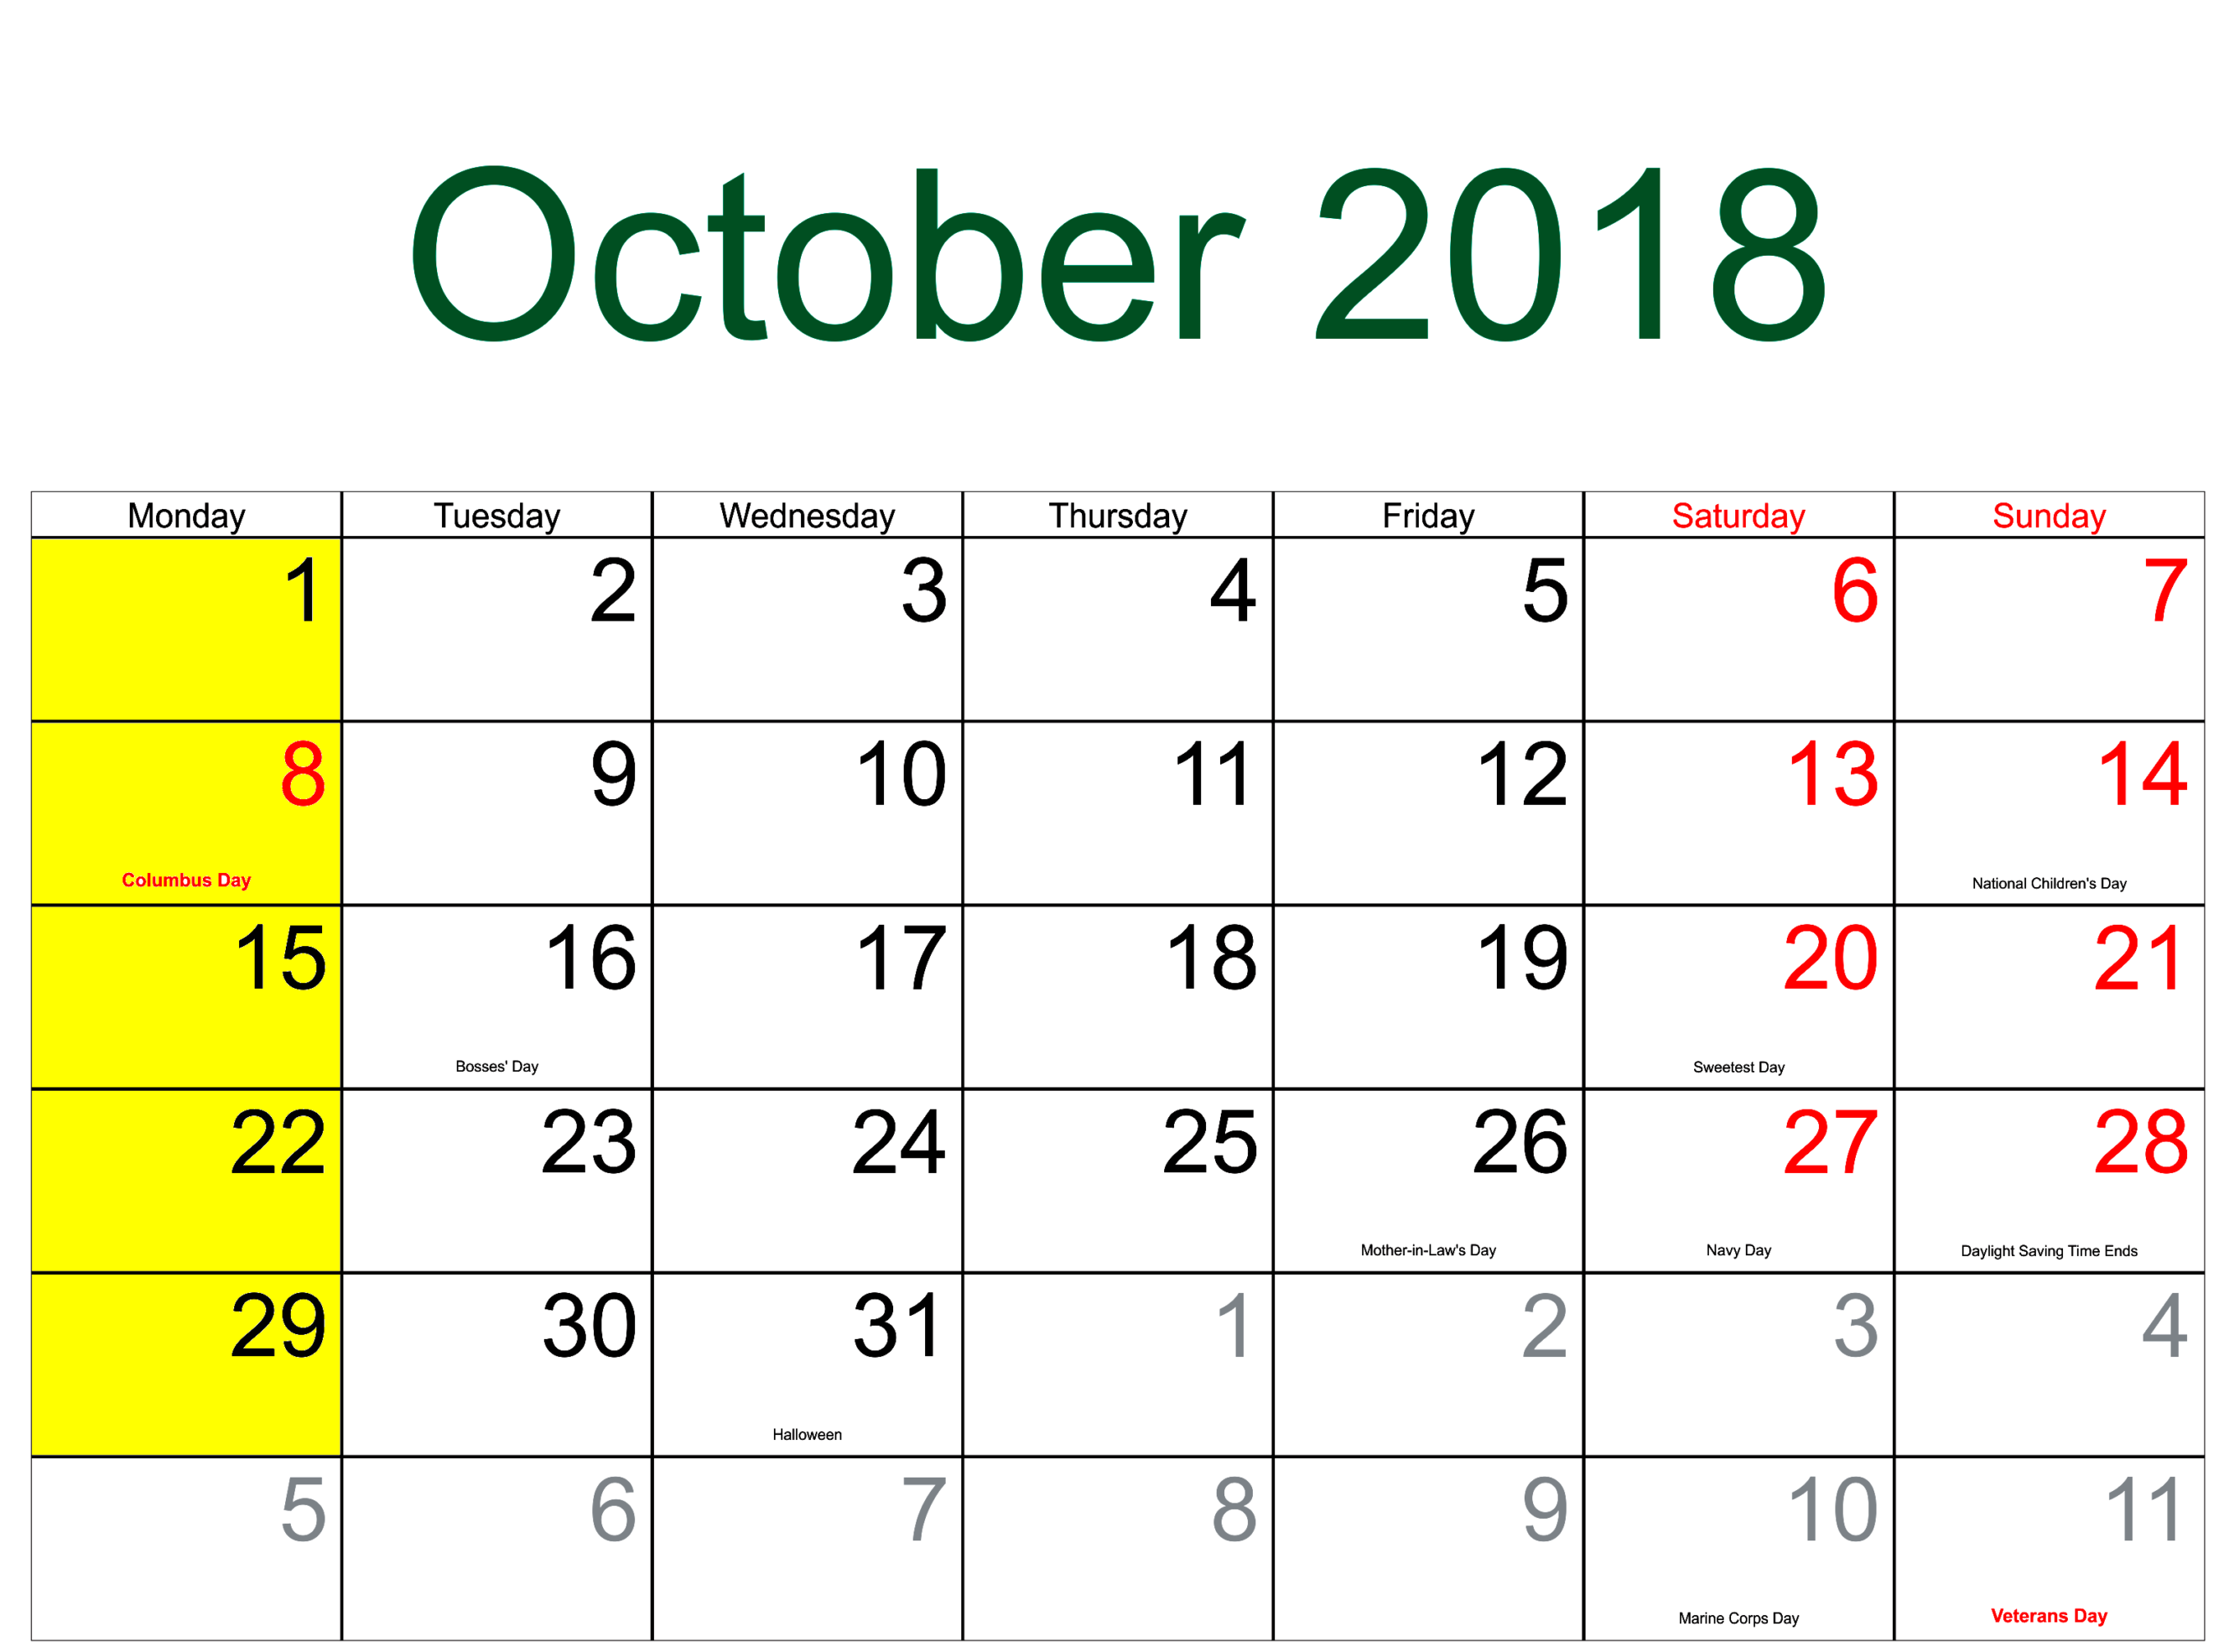 October 2018 Calendar US With Holidays